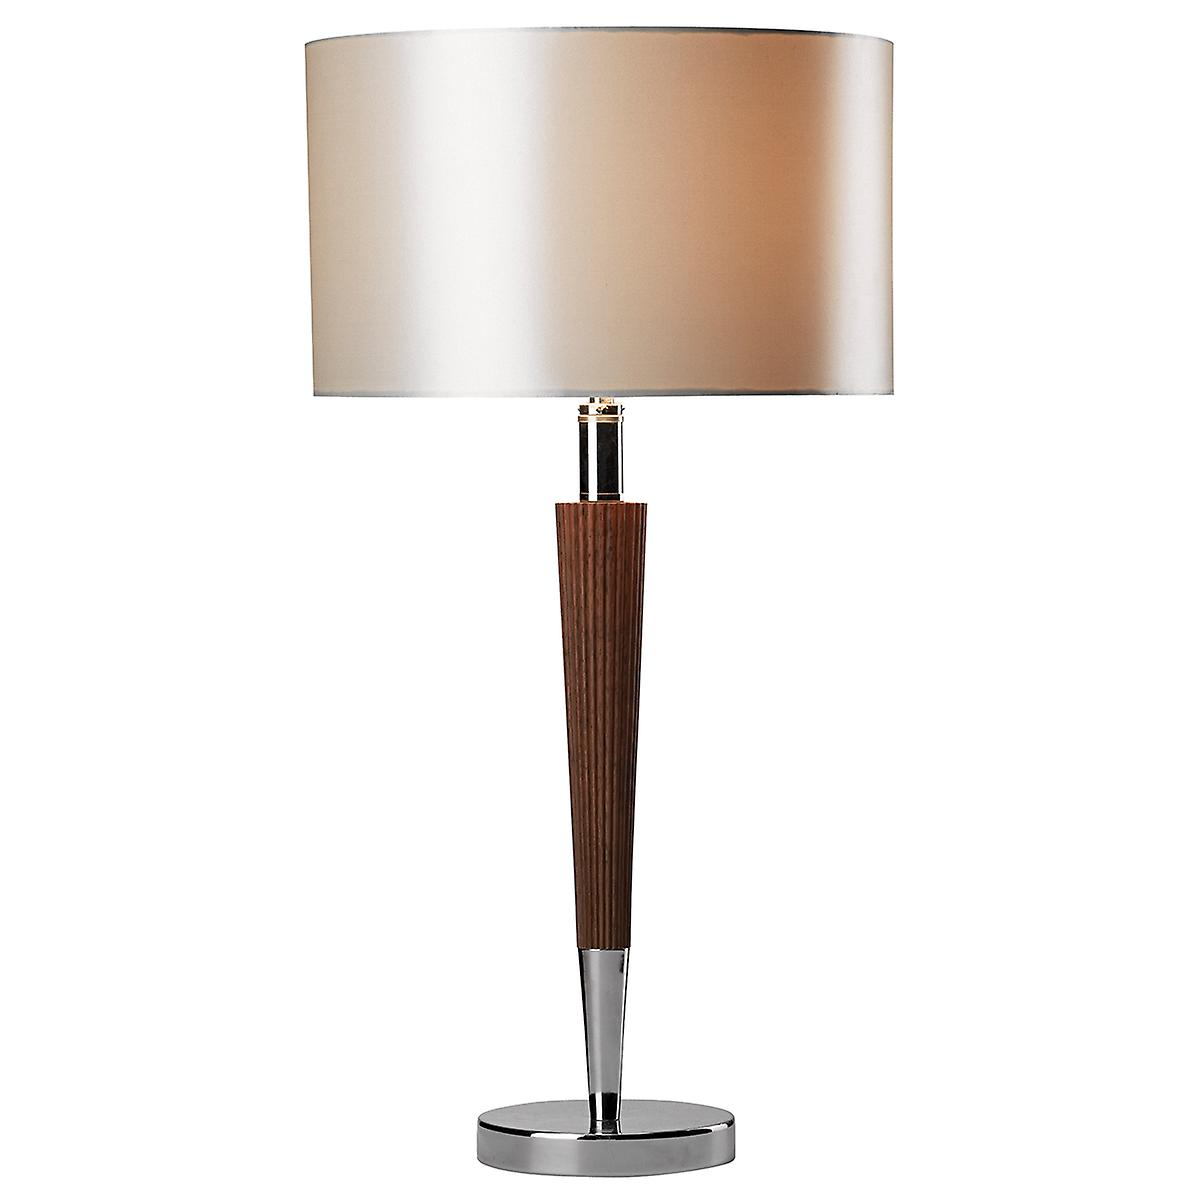 Dar VIK4081 Viking Table Lamp Dark Wood With Cream Shade